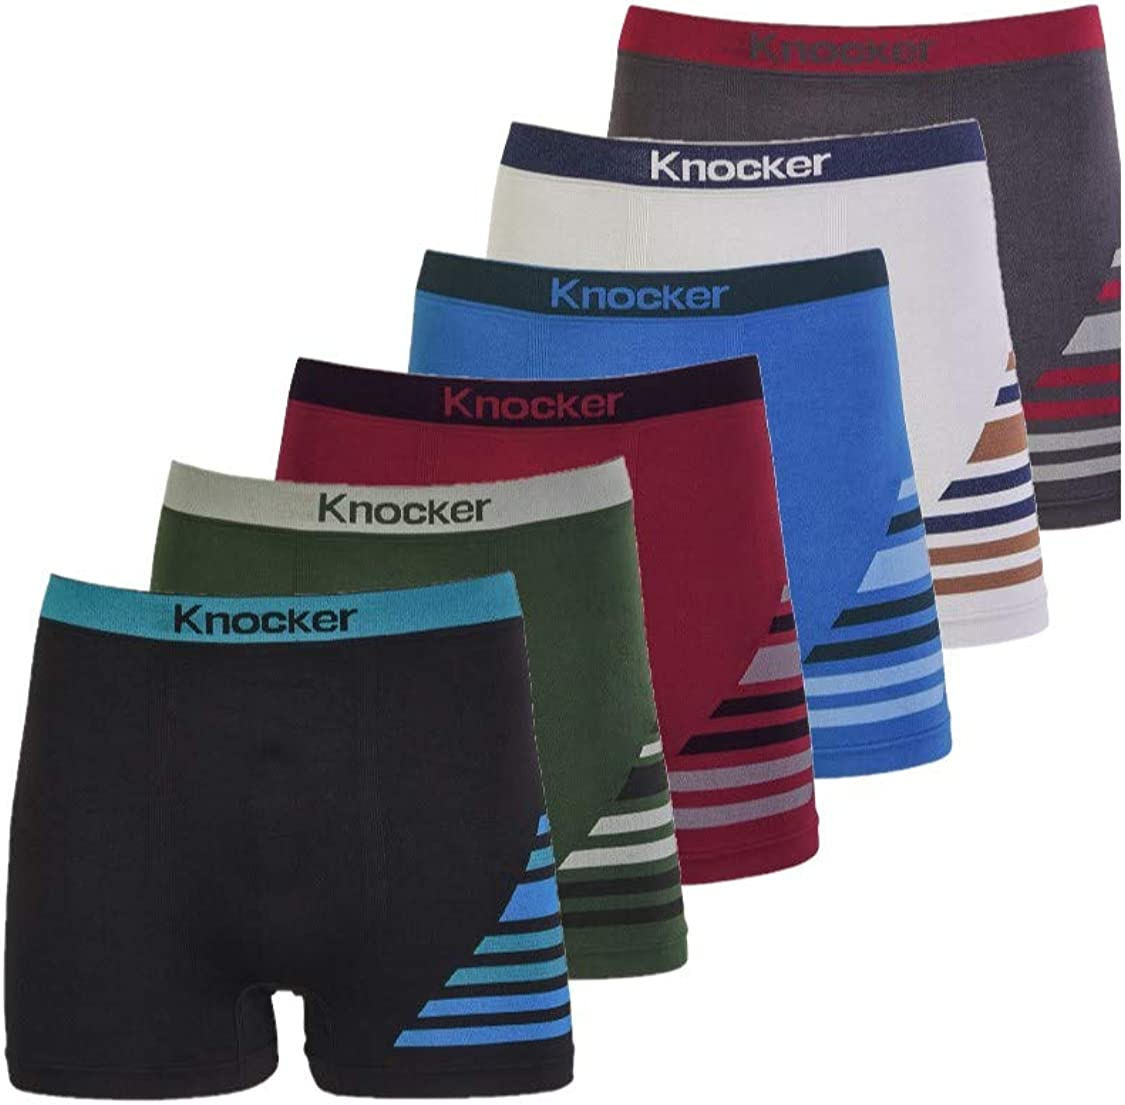 Knocker Men's Seamless Nylon Boxer Brief Underwear 6-Pack One Size Assorted Color